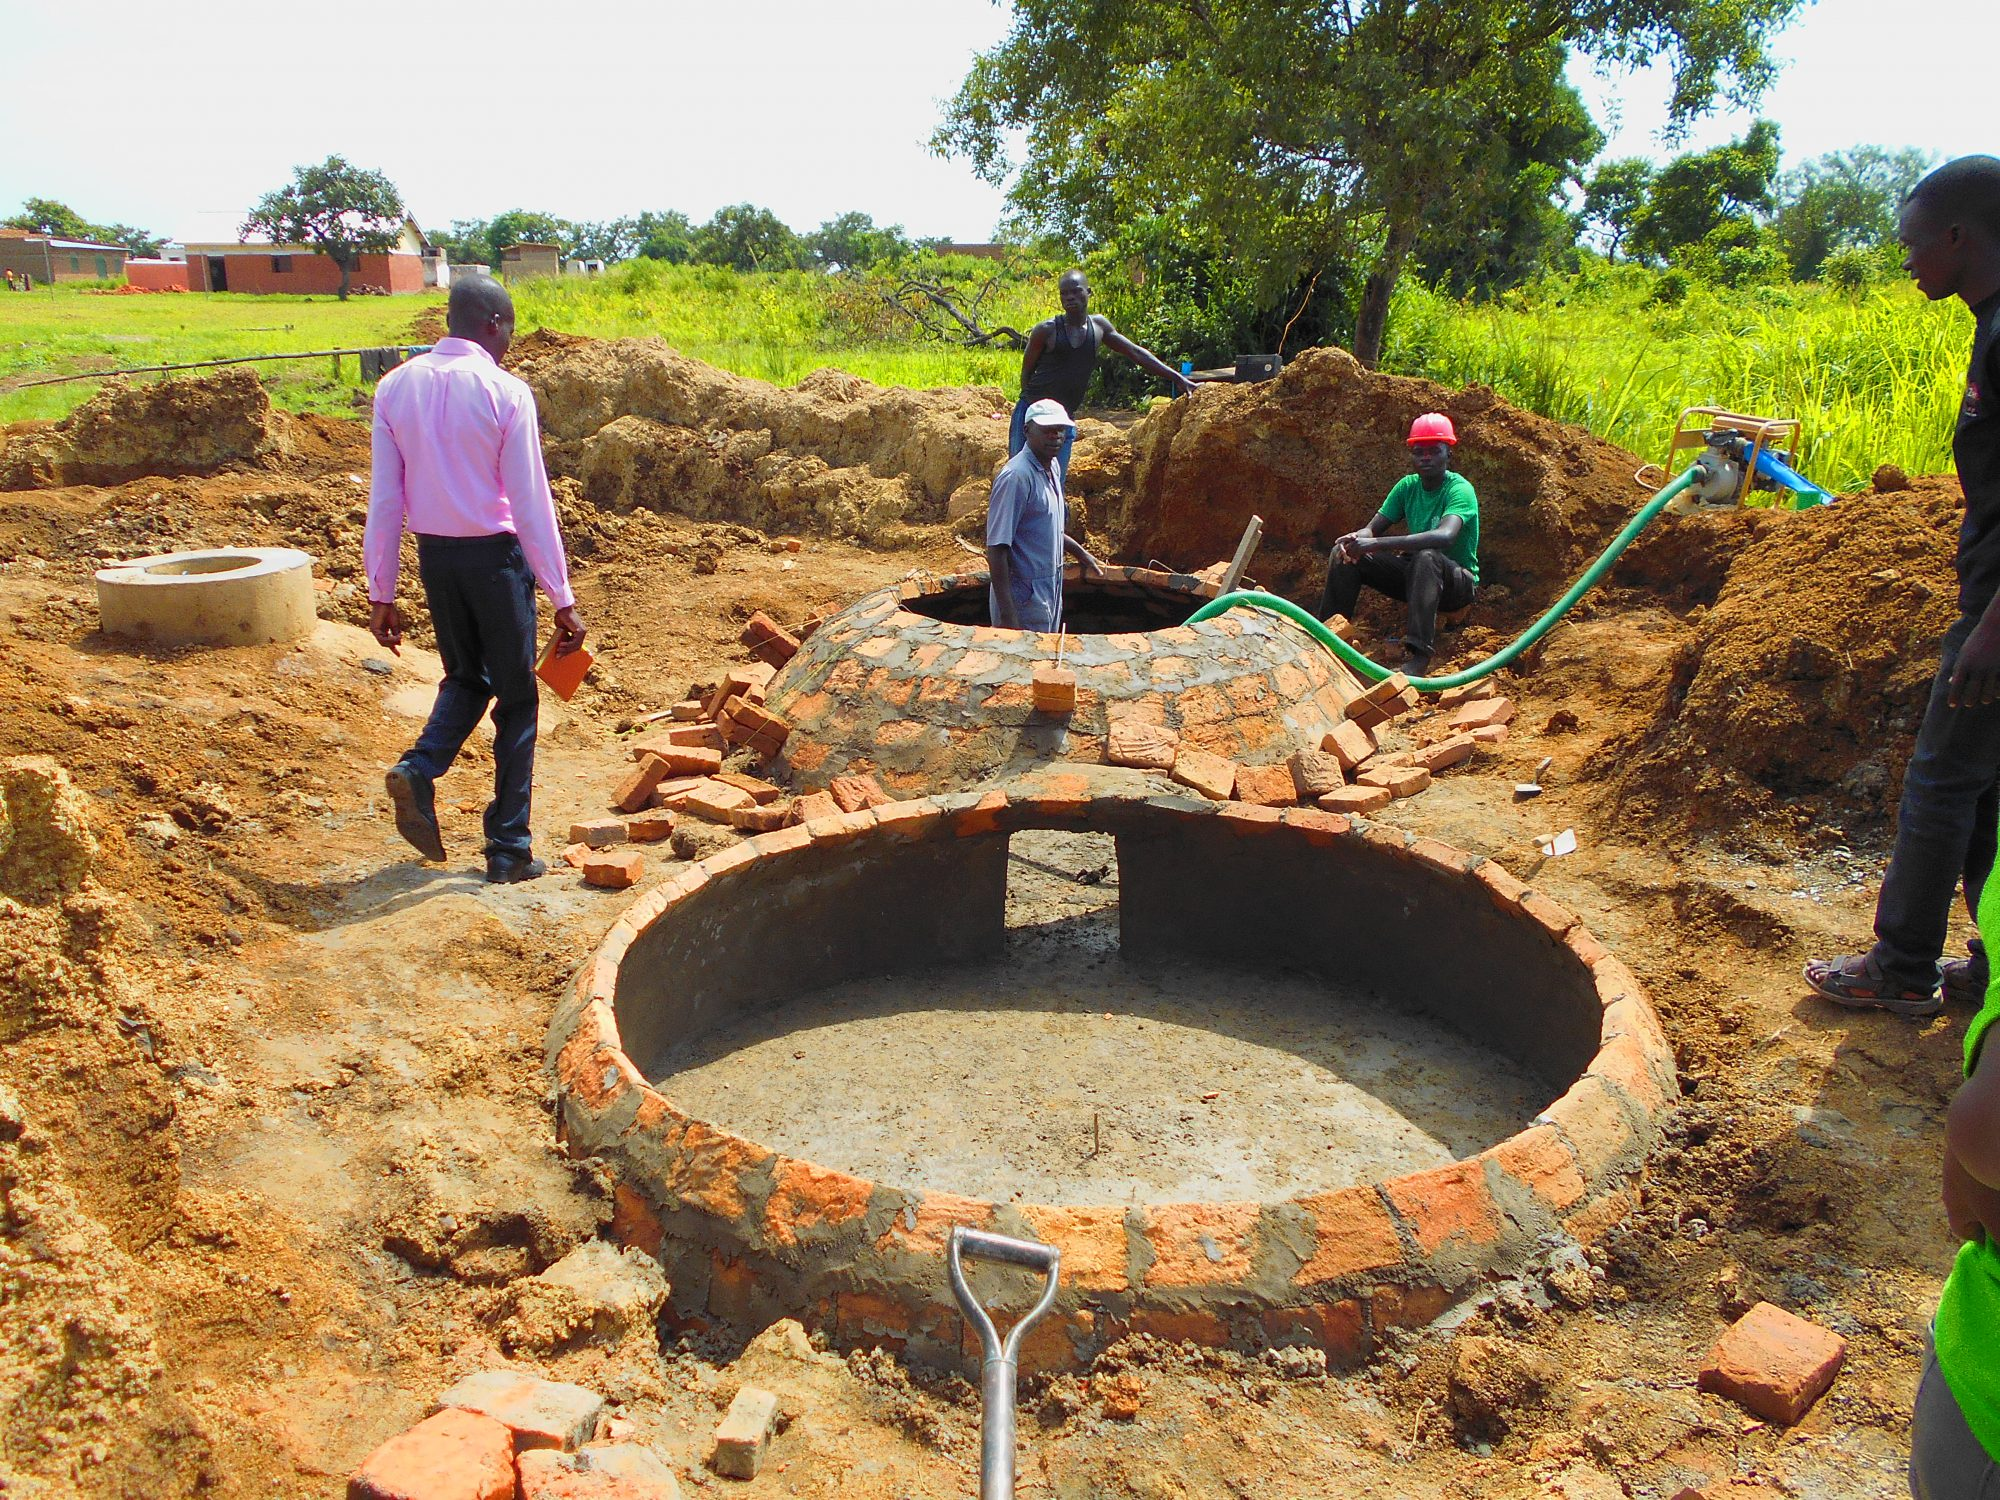 Building a biogas plant for a local school in Barilonyo